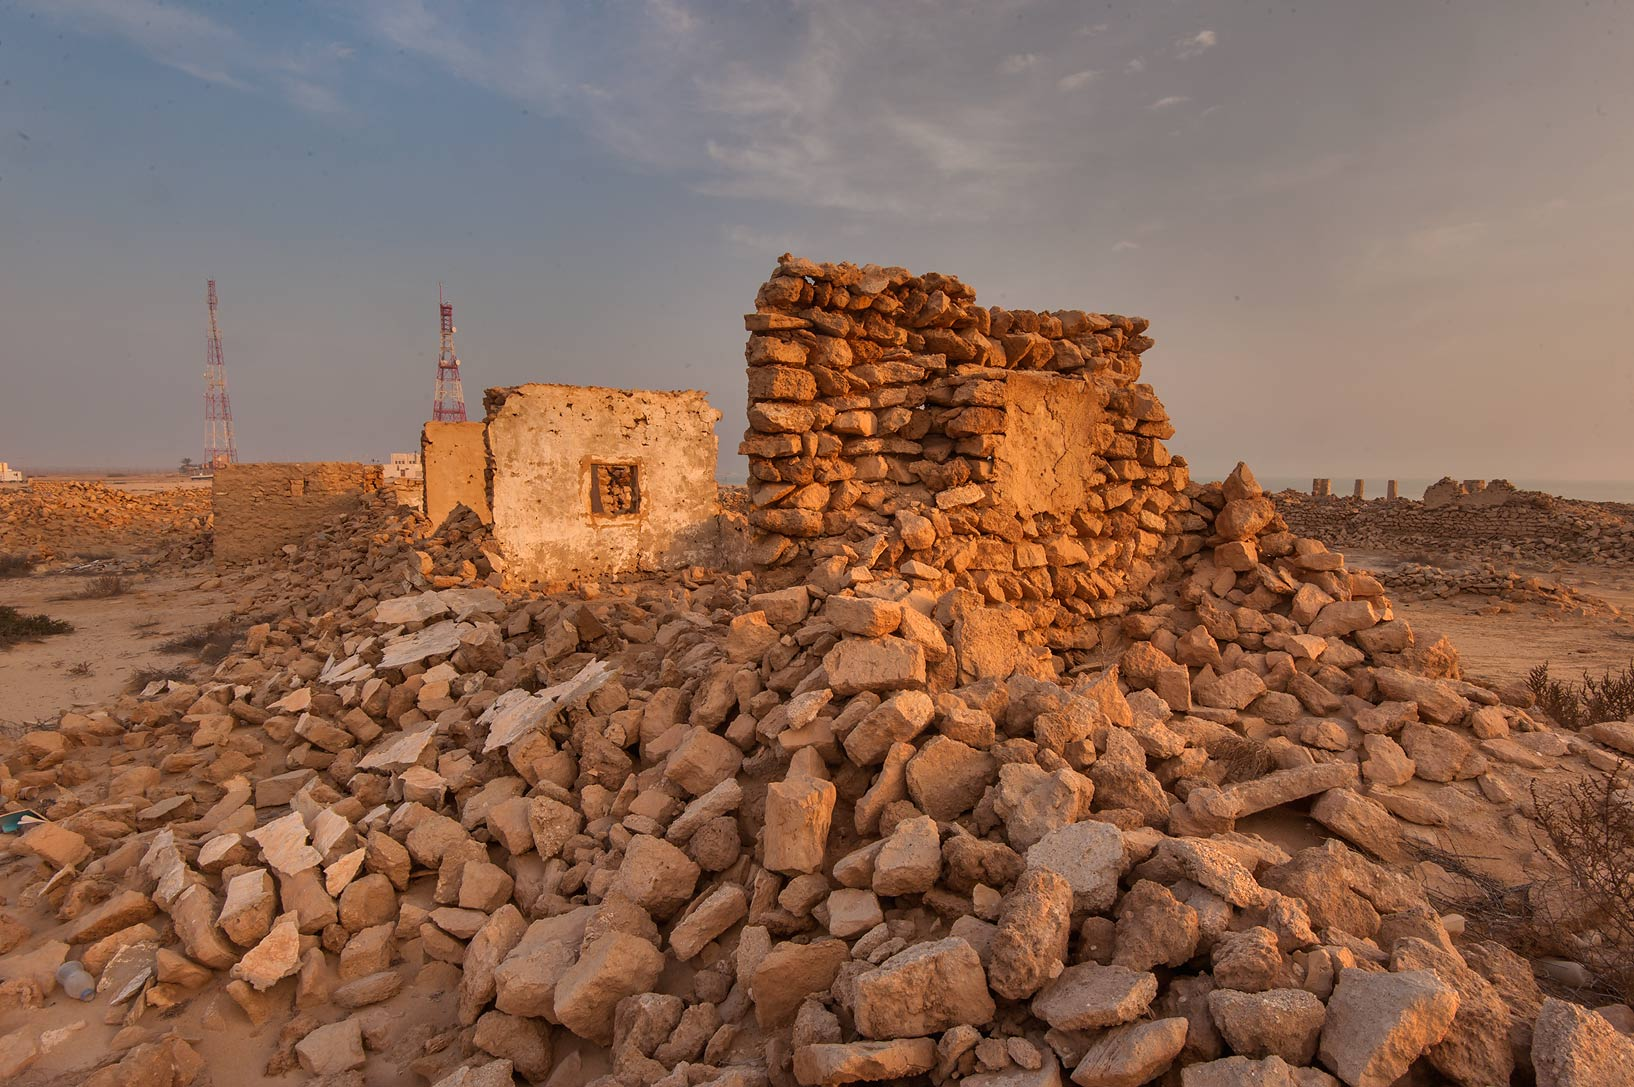 Remains of a house in old fishing village (ghost...eastern coast, Ash Shamal area. Qatar